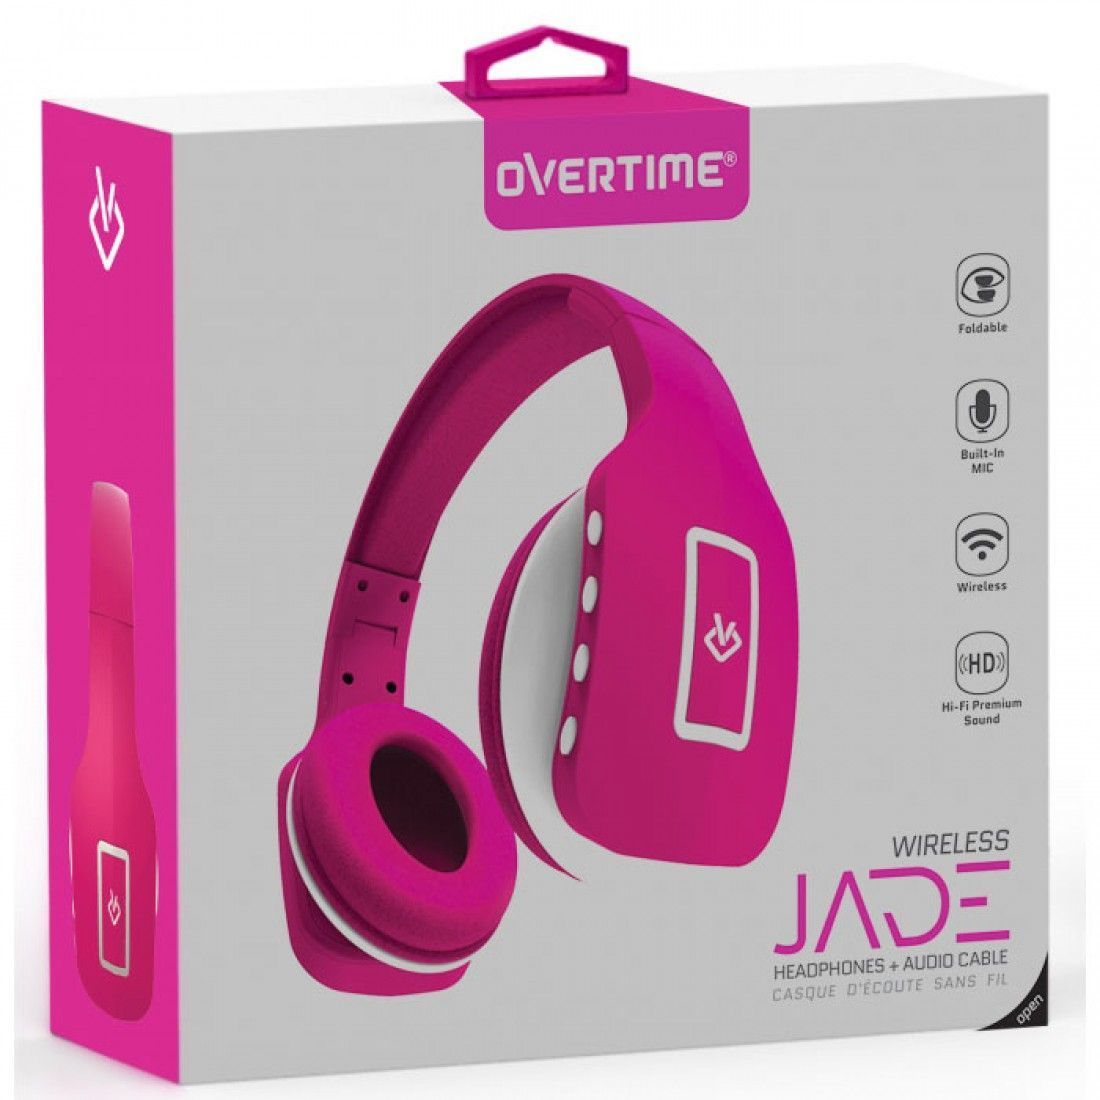 Overtime Jade Foldable Bluetooth Headphones with Built in Mic Hands Free Remote - Black